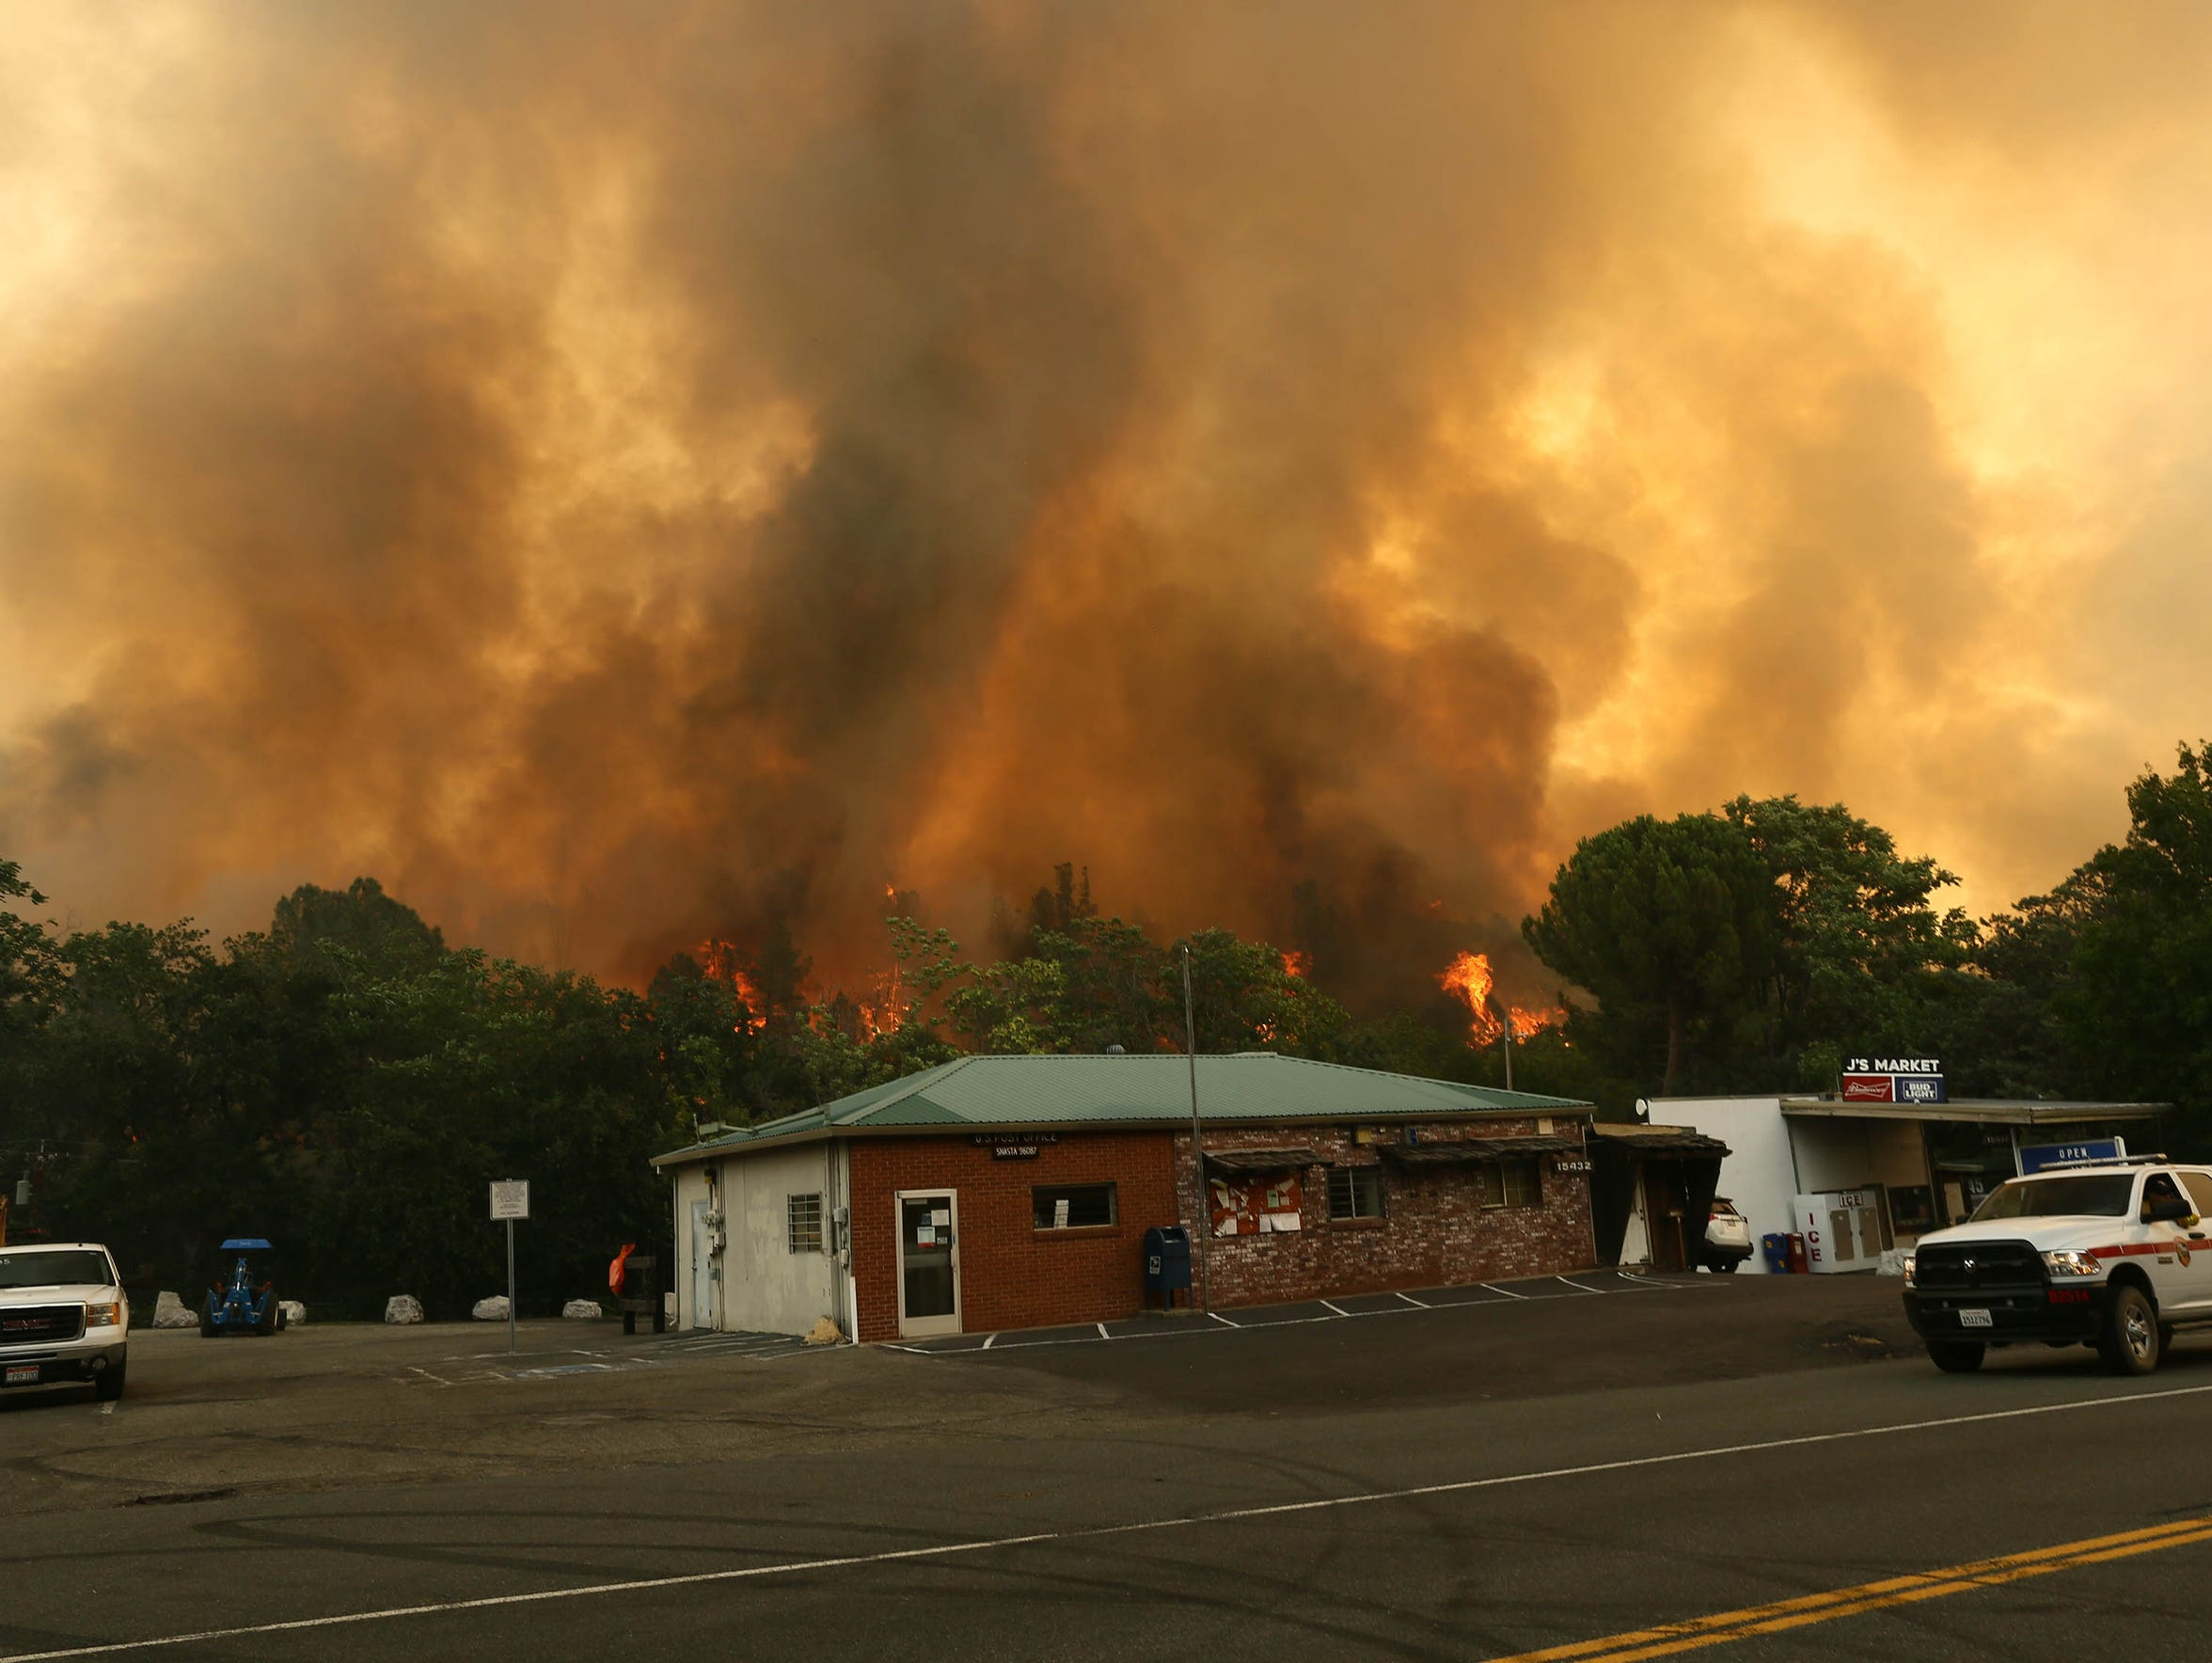 As seen July 26, 2018, the Carr Fire burns behind J's Market in Shasta. (Hung T. Vu/Special to the Record Searchlight)